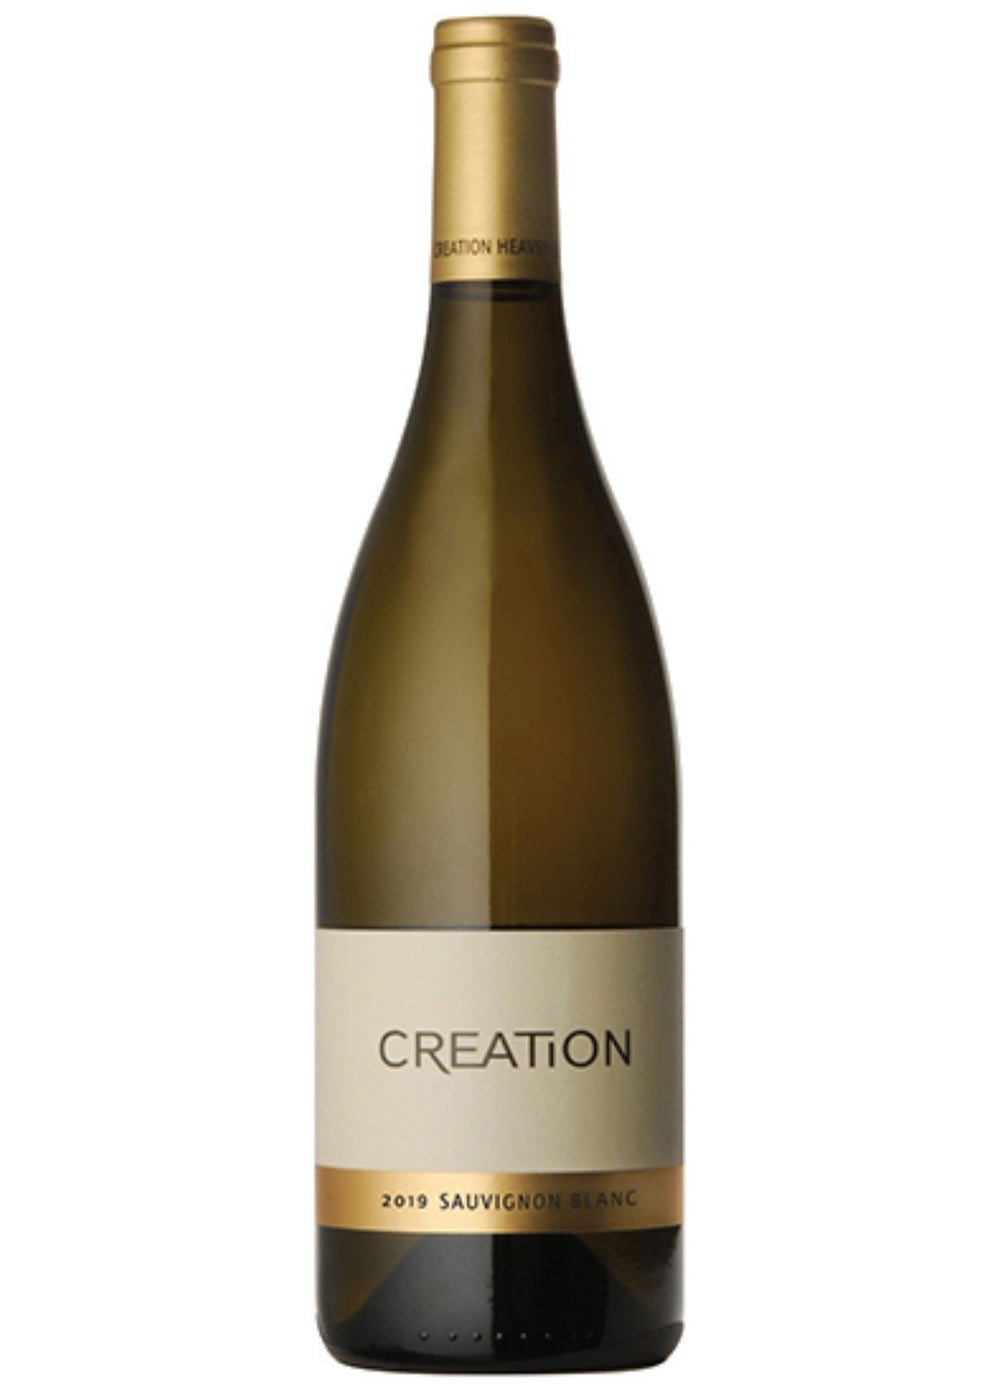 Creation - Sauvignon Blanc 2019